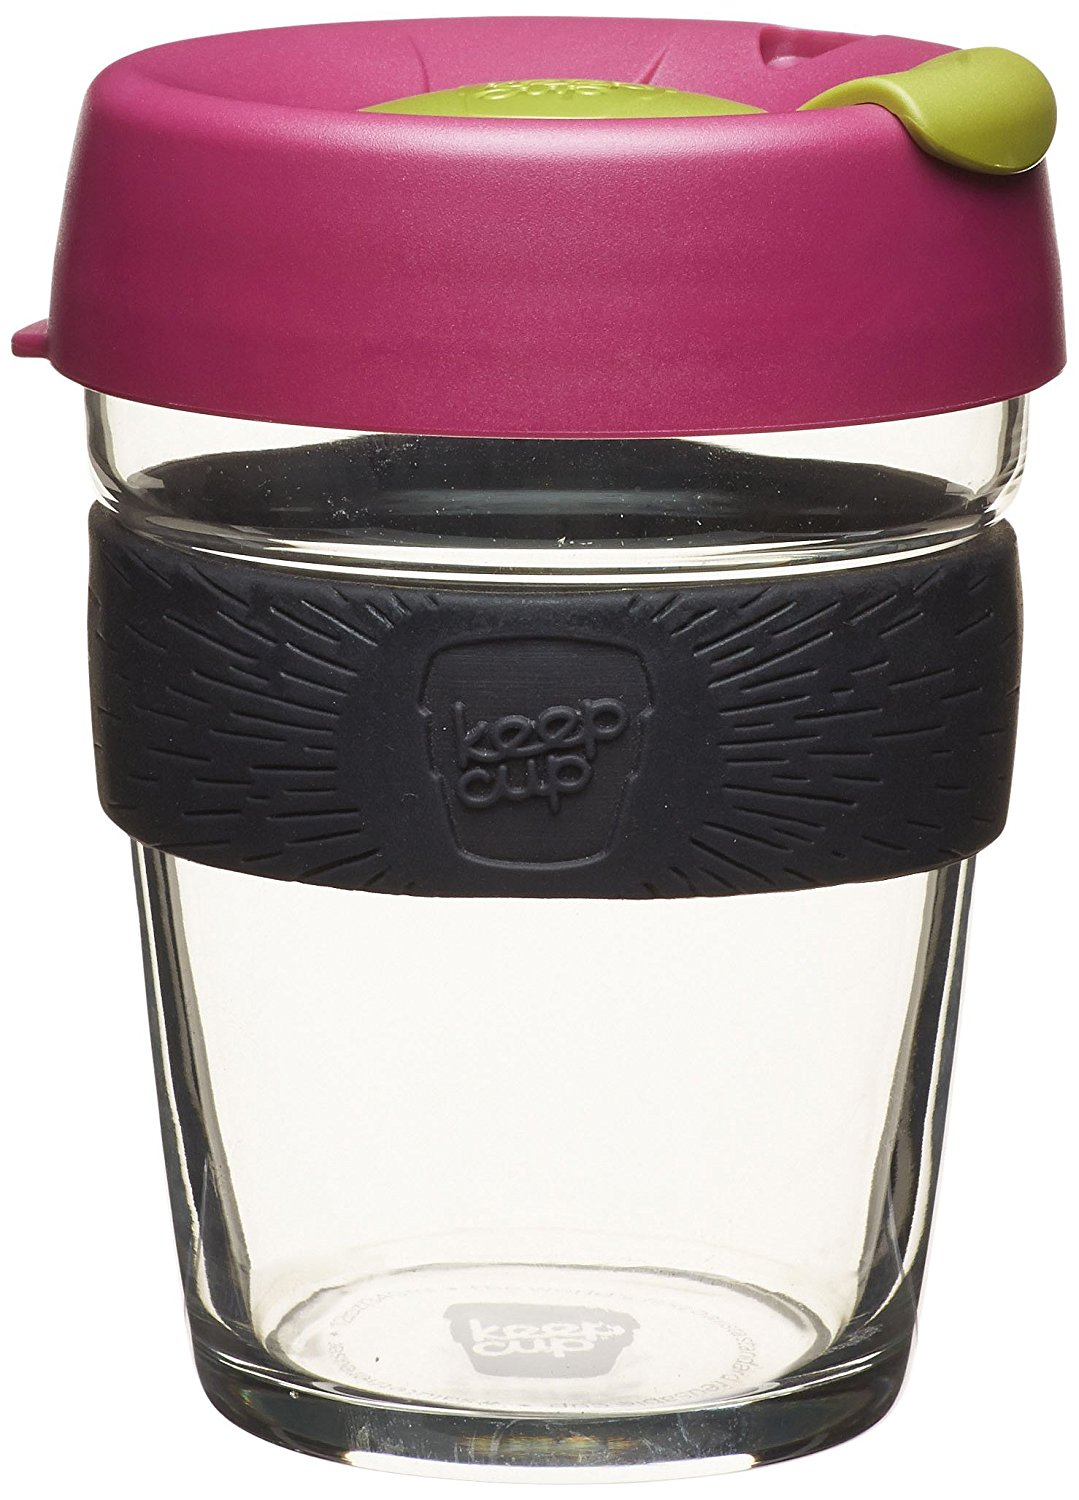 <p>Bringing your own cup to the coffee shop is not only environmentally friendly, it can also save you a few cents as many shops offer a discount for BYOC. The KeepCup Travel Mug holds 12 oz of delicious coffee in a BPA free container. The fully-tempered glass is dishwasher and microwave safe with a splash proof lid.{&amp;nbsp;} (Image: Amazon.com)</p>